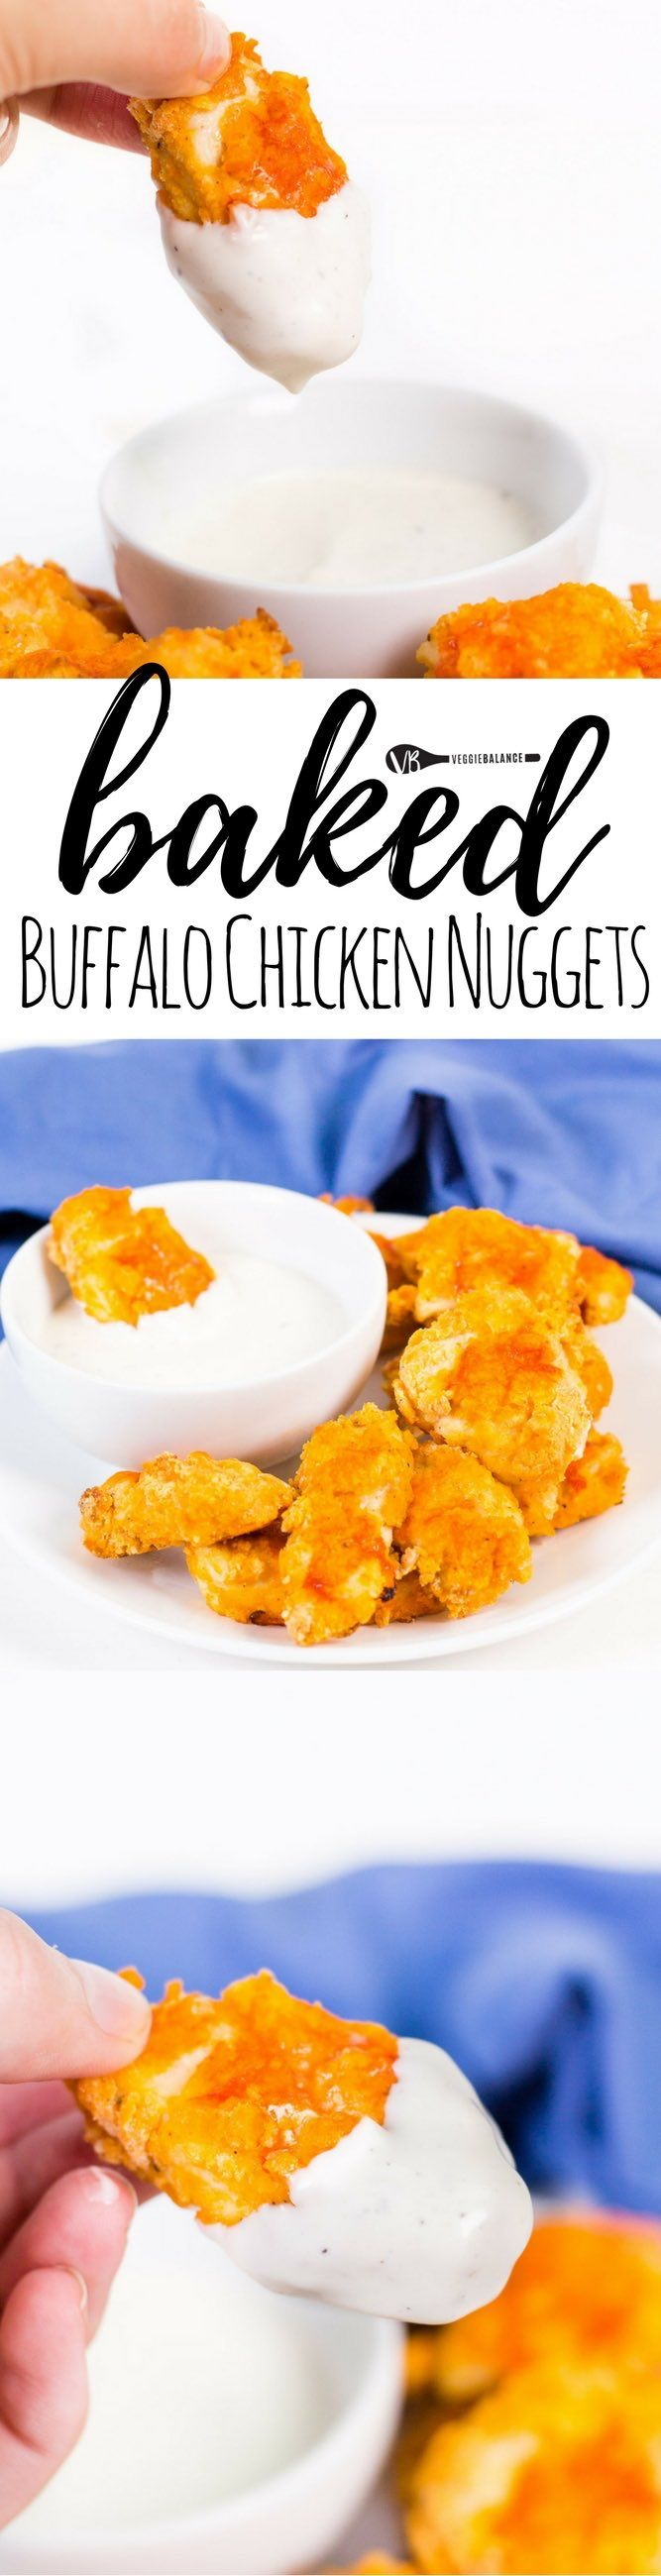 buffalo chicken nuggets recipe offer bite-sized delights for dinner, meal prep and so much more. make your healthy eating easier with a throwback to this childhood favorite sans the gluten. (gluten-free, dairy-free, low-carb, low-sugar)